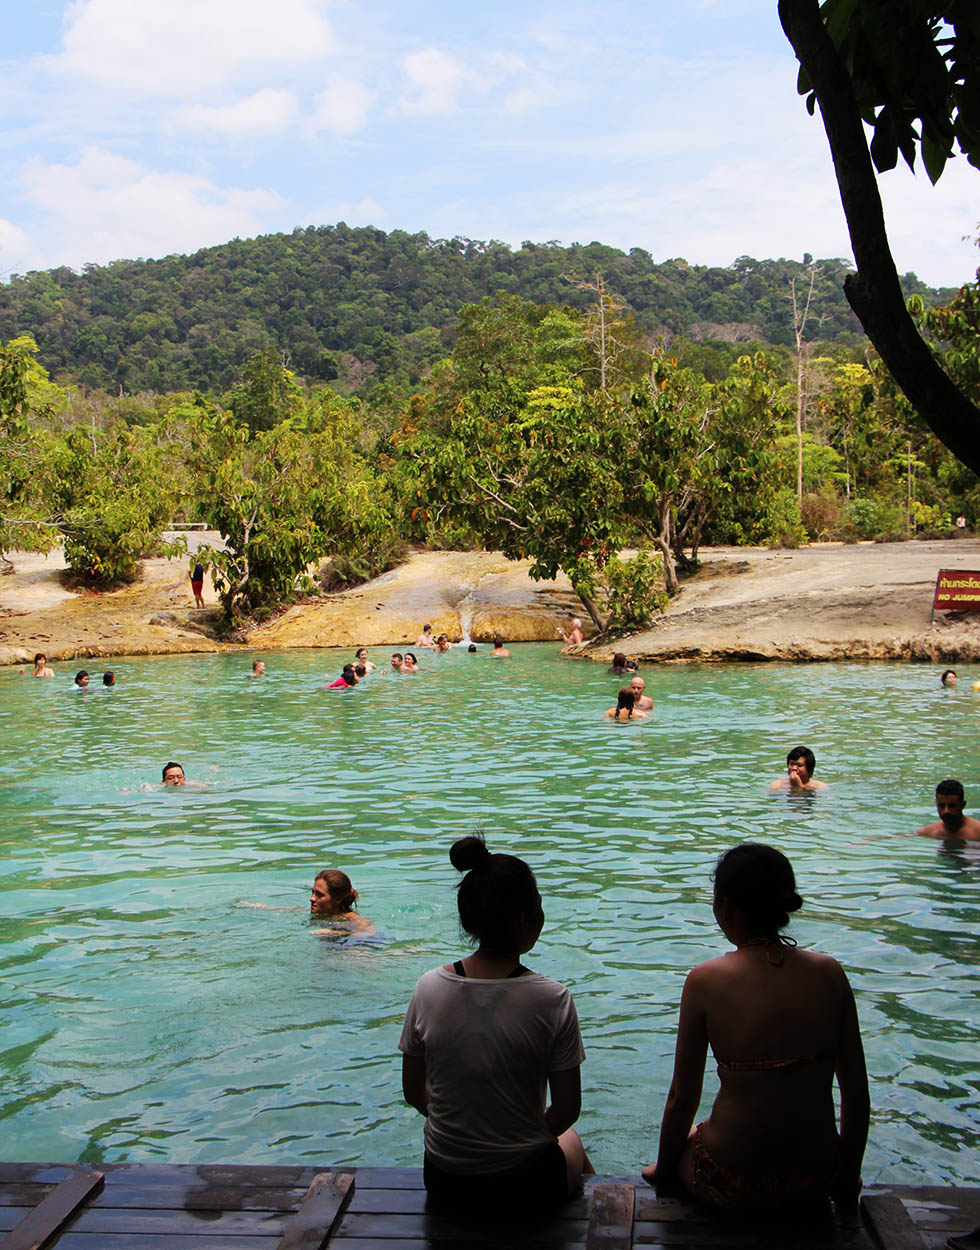 Swimming at the Emerald Pool in Krabi